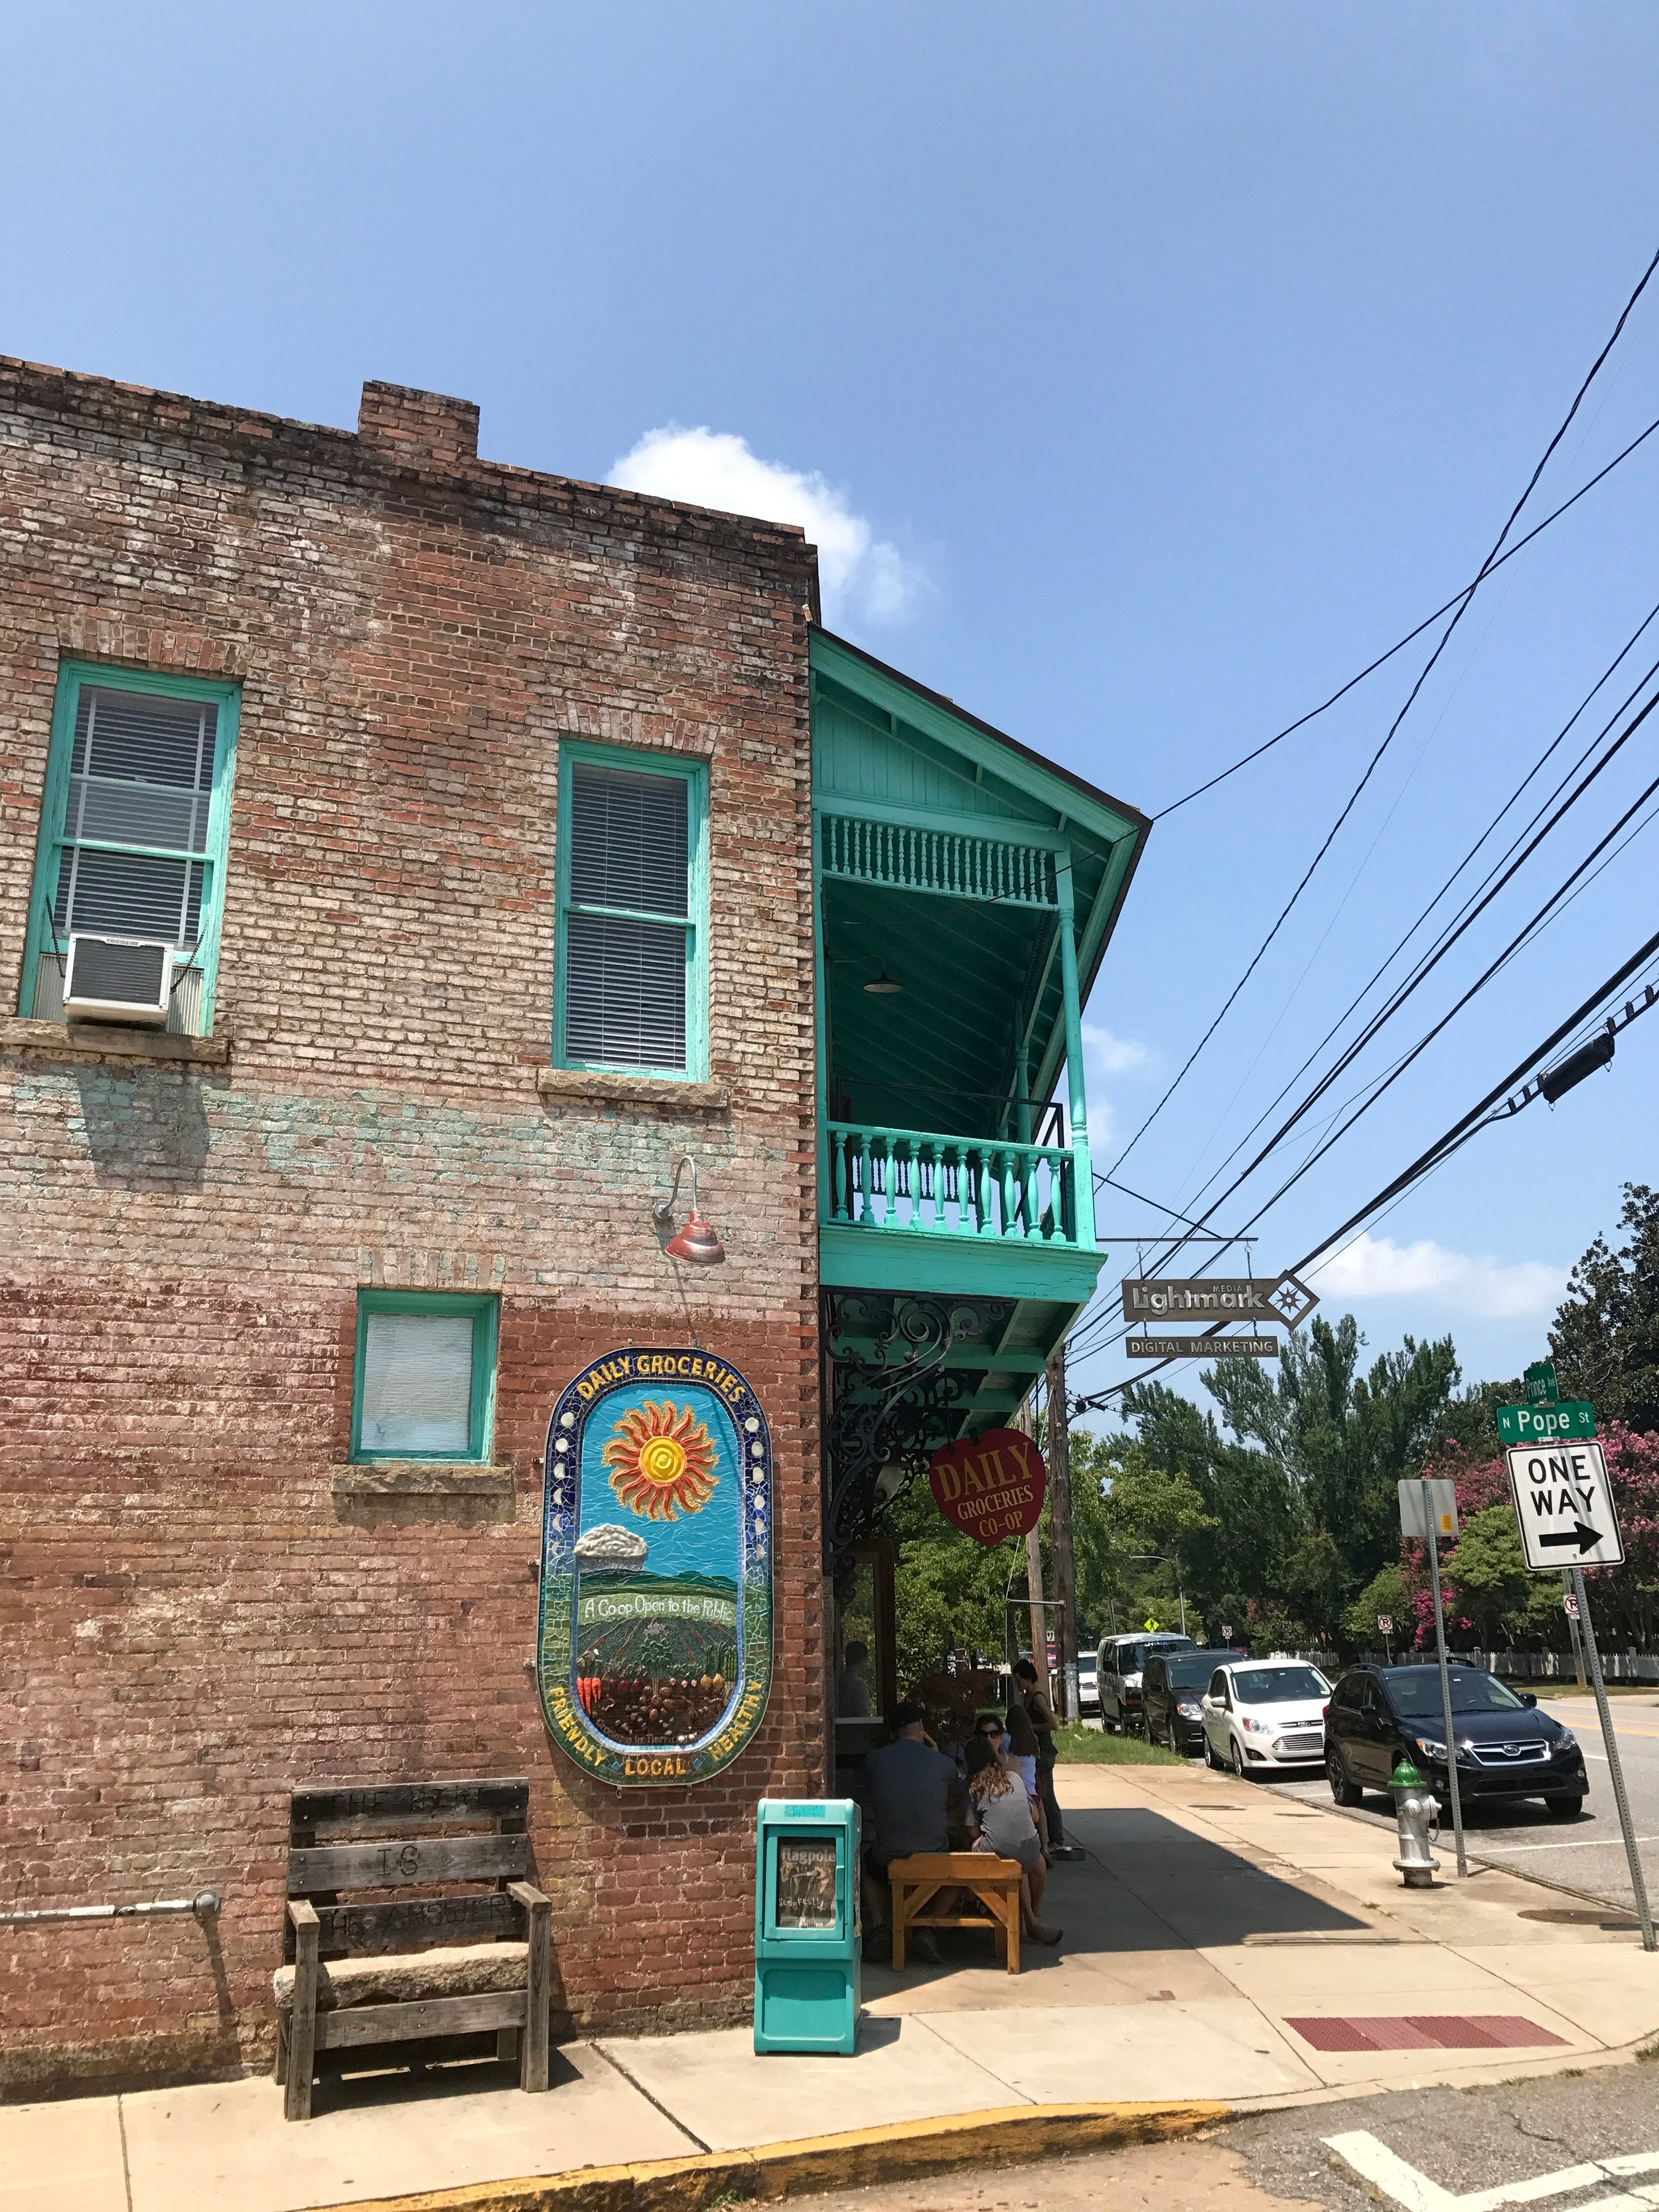 Daily Groceries Co-op, Athens Georgia